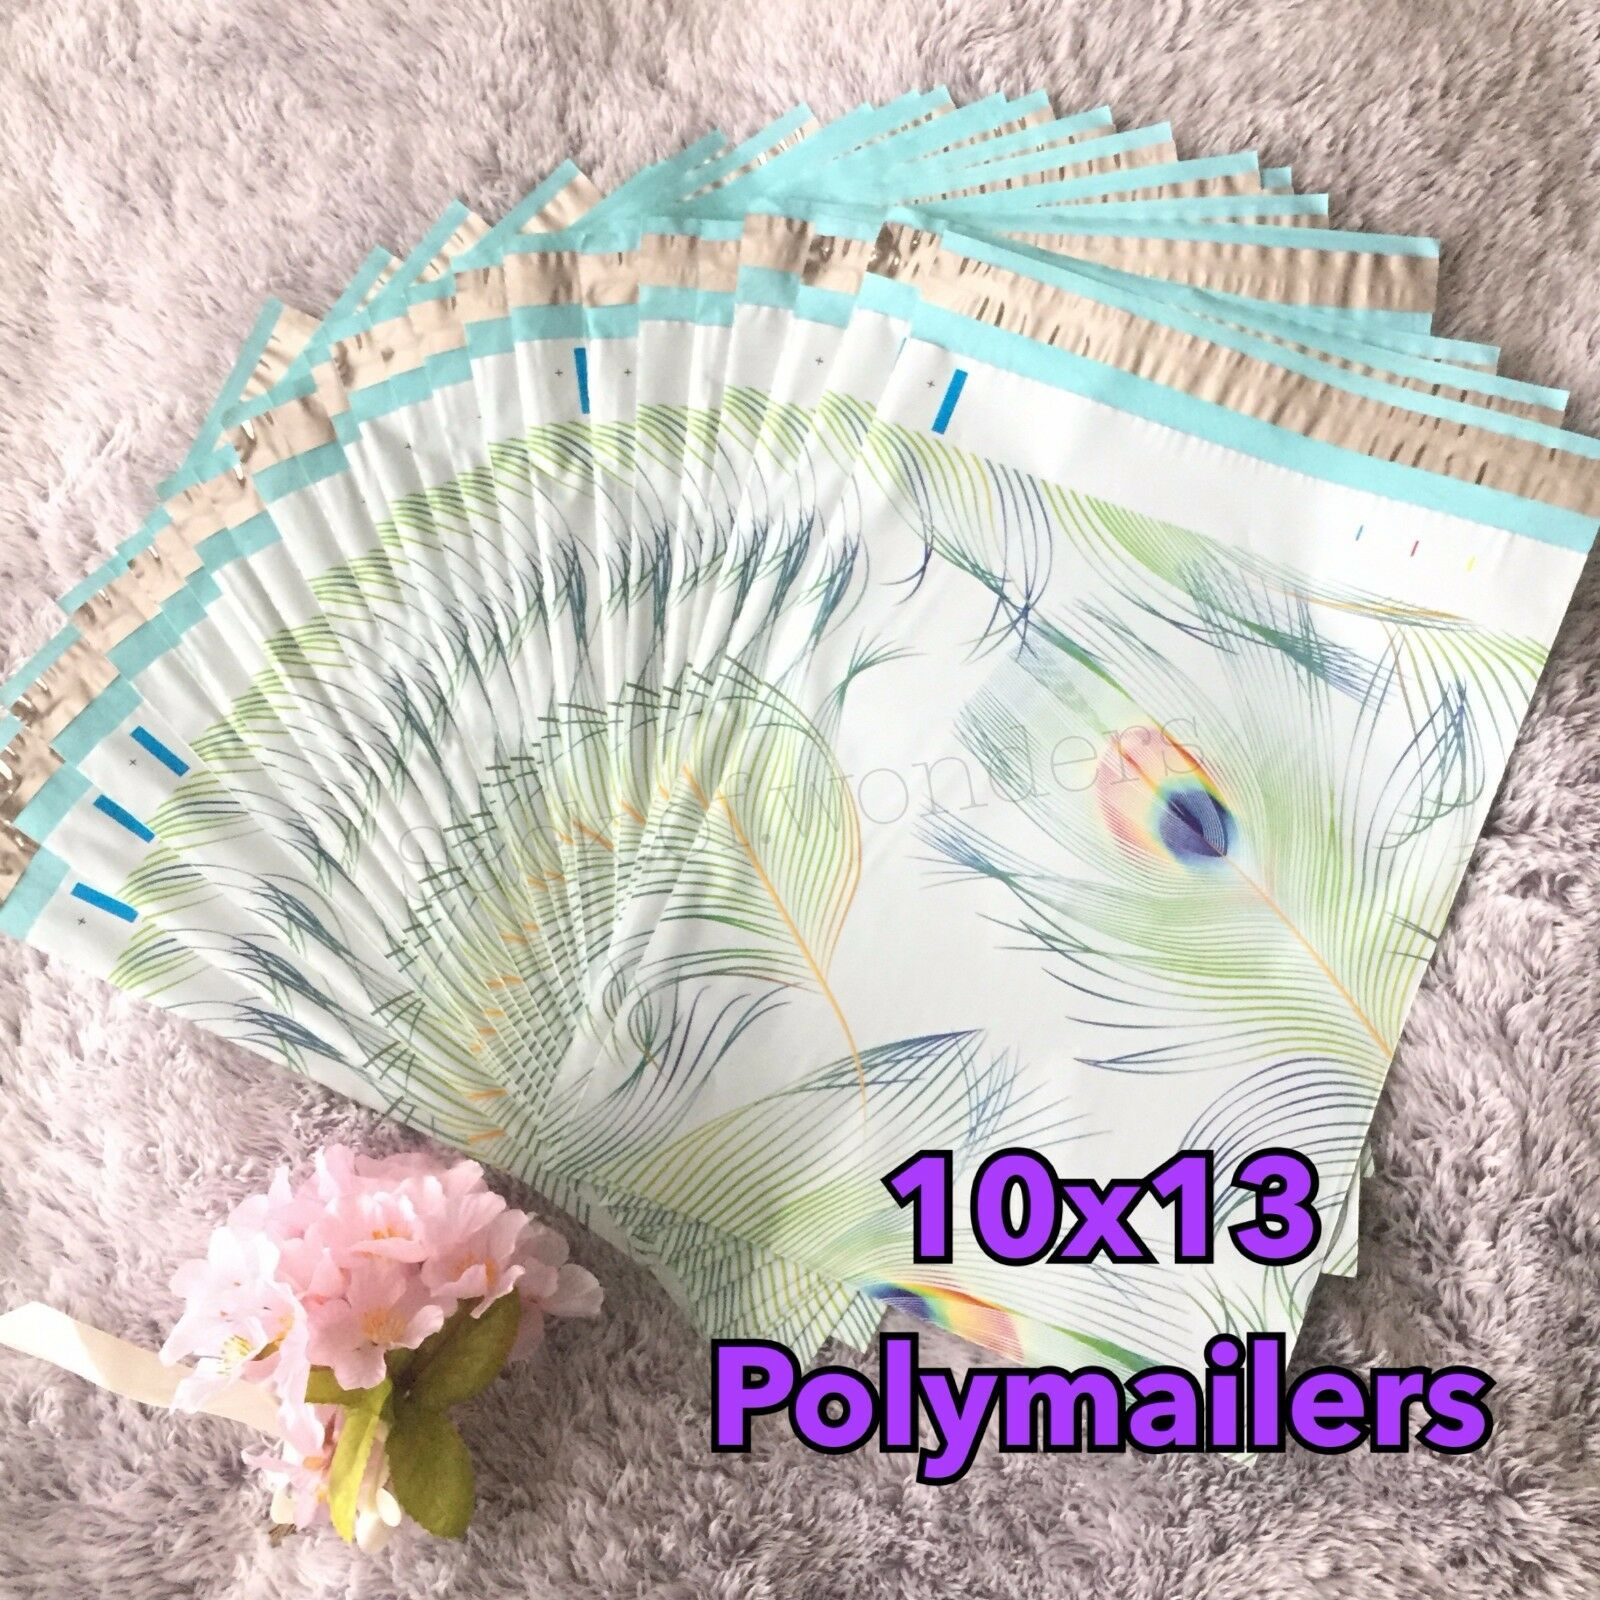 50 DESIGNER Printed Poly Mailers 10x13 Envelopes Bags Peacock